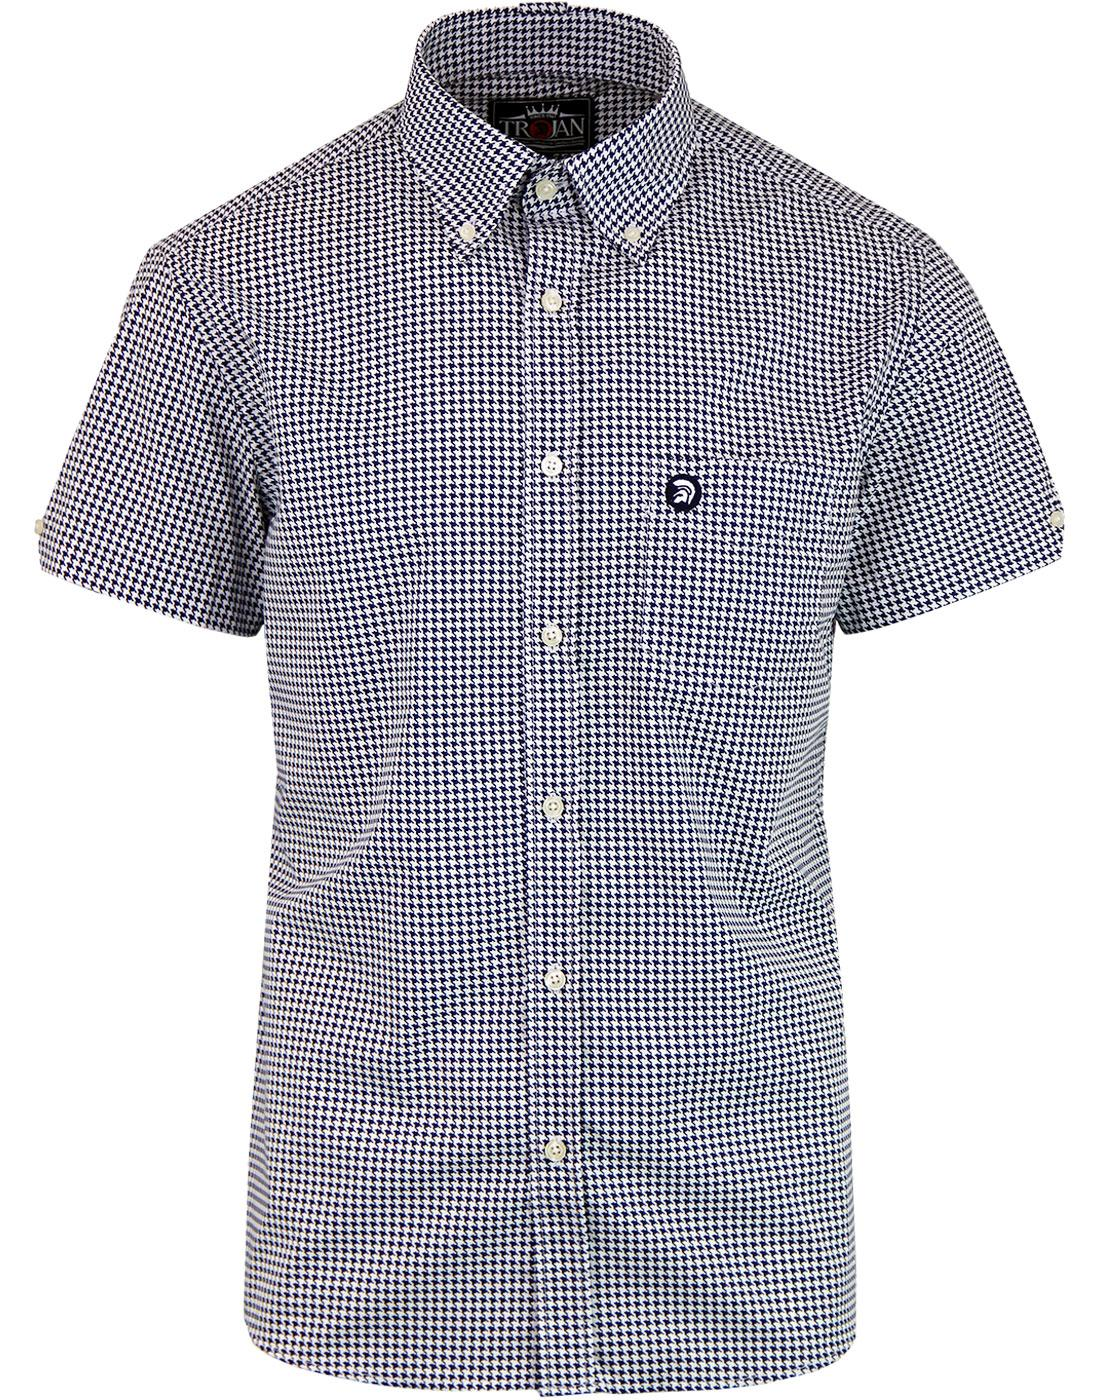 TROJAN RECORDS Retro Ska Mod Dogtooth S/S Shirt